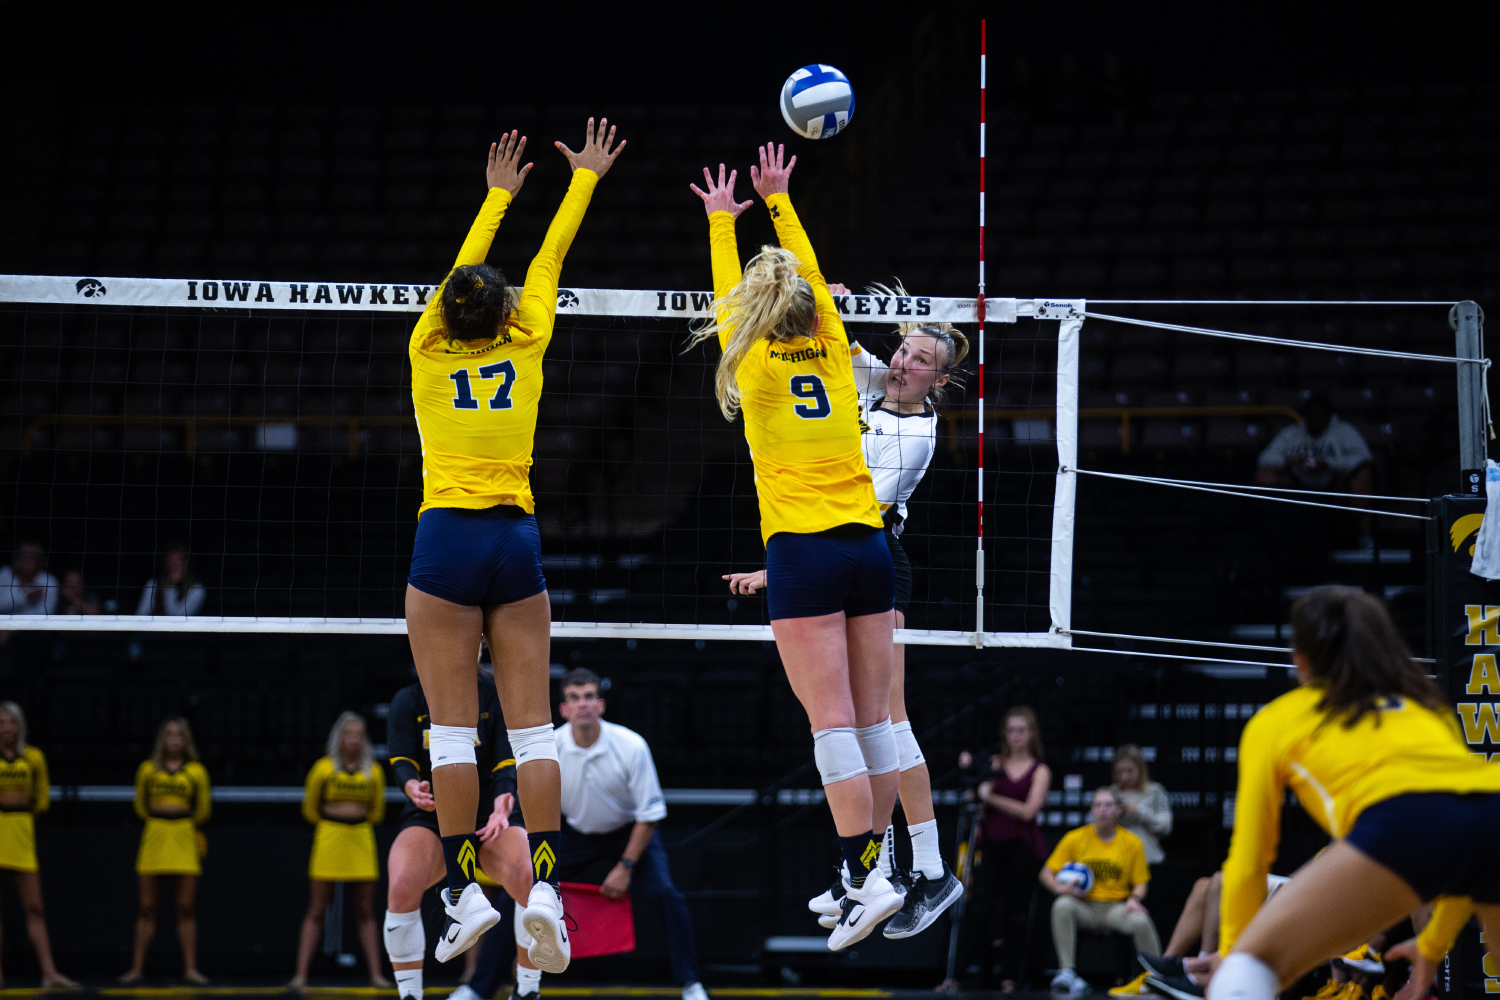 Cali Hoye spikes the ball during Iowa's match against Michigan at Carver-Hawkeye Arena on September 23, 2018. The Hawkeyes were defeated 3-1. (Megan Nagorzanski/The Daily Iowan)